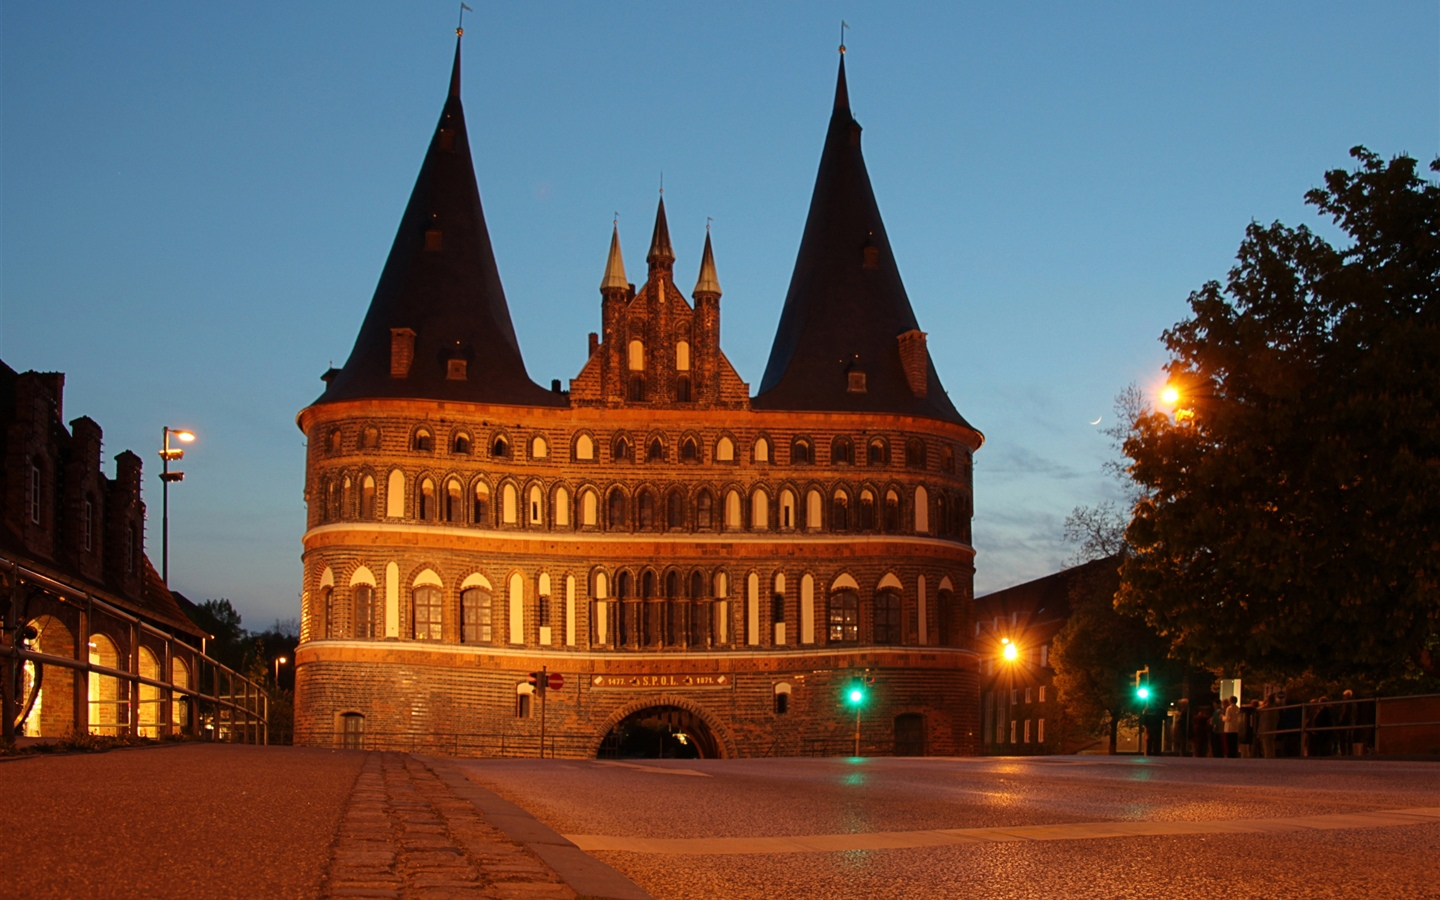 Germany, Holstentor, Lubeck, castle, night, lights 1440x900 wallpaper